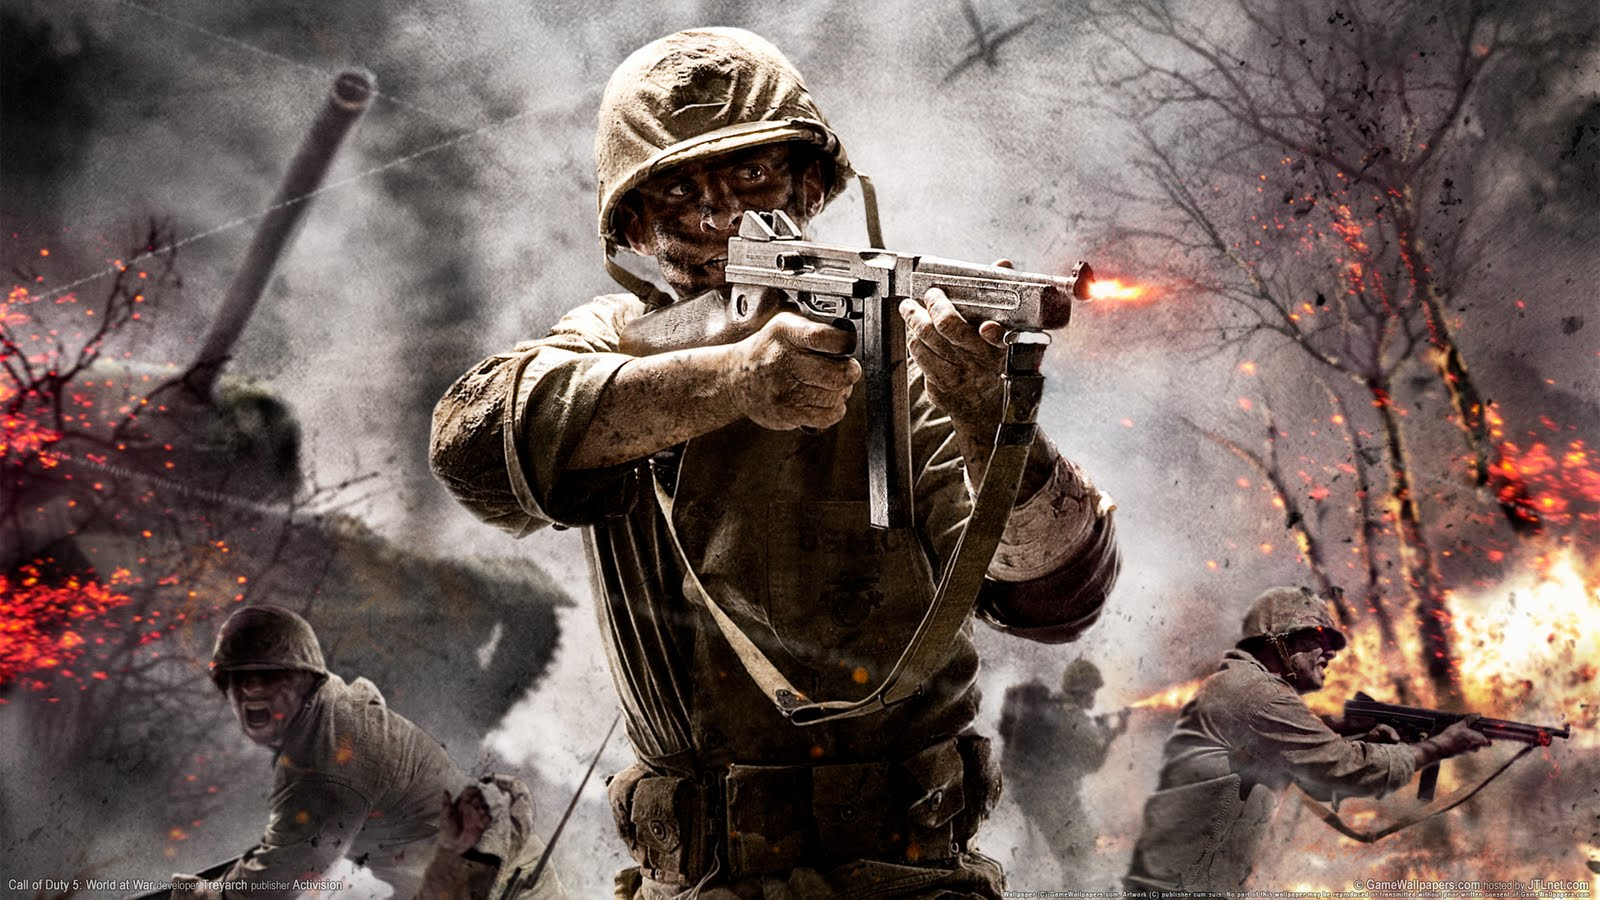 Happy Wallpaper: call of duty world at war background